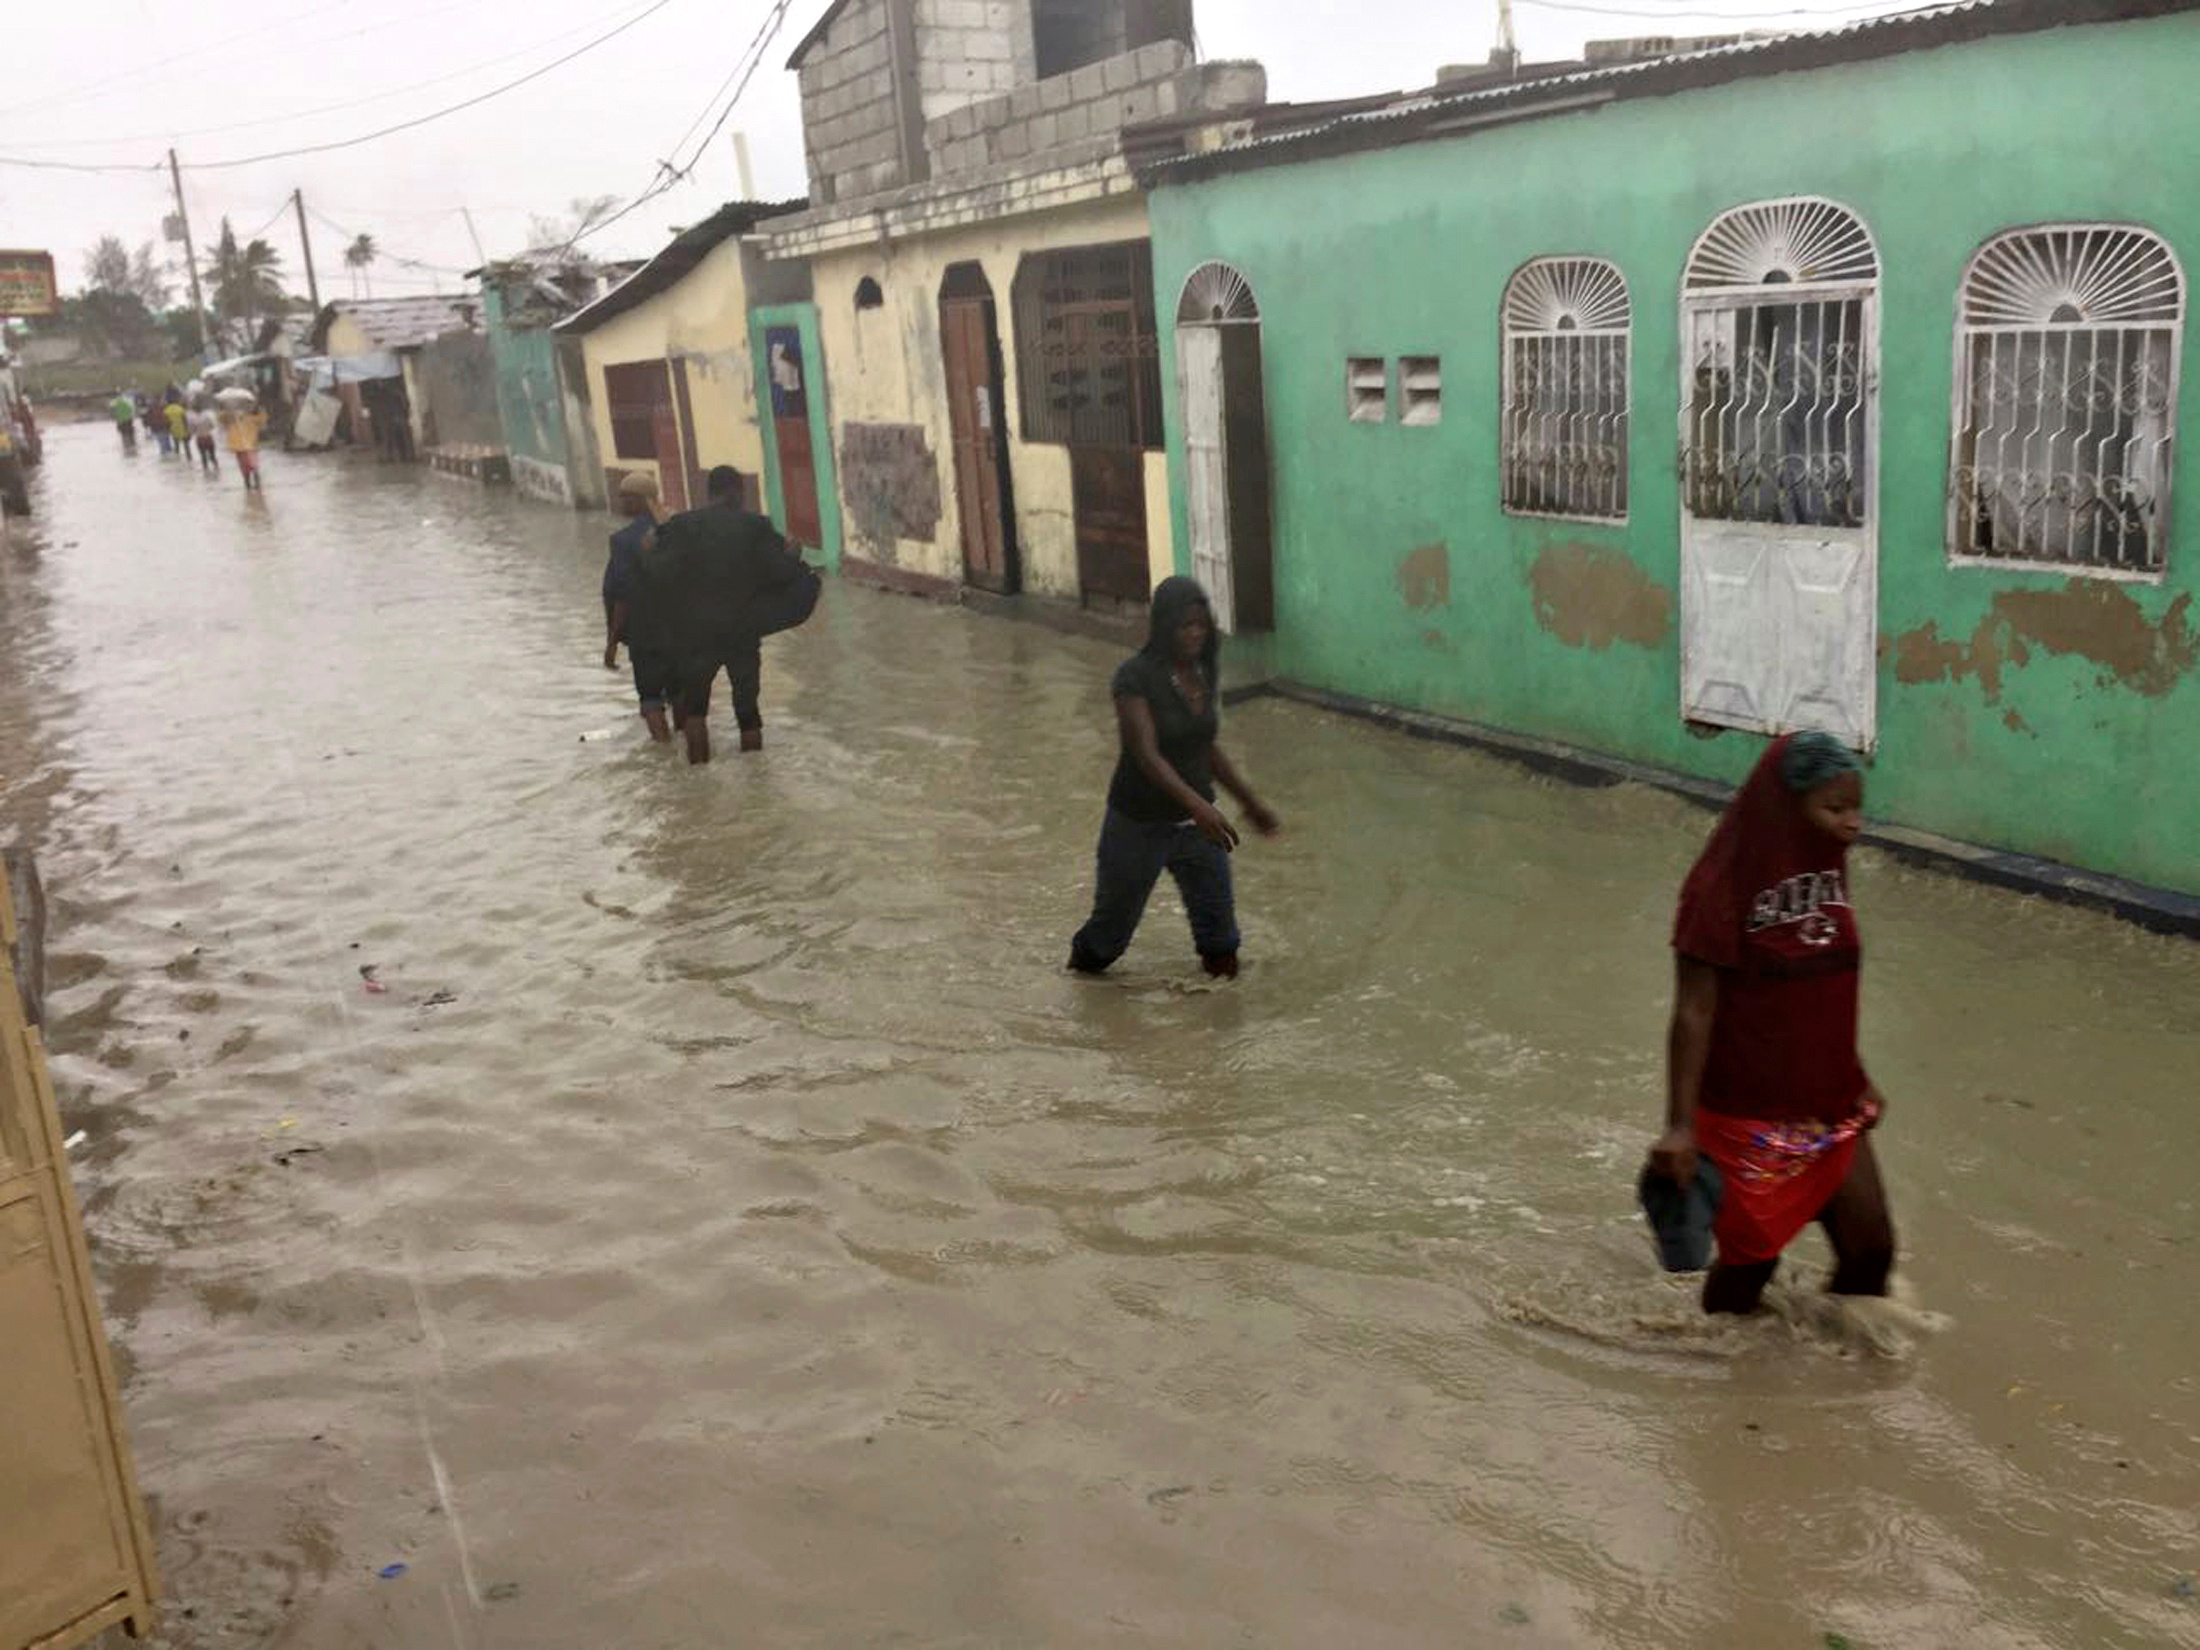 People wade through a flooded street in the impoverished Cite-Soleil neighborhood of Port-au-Prince. Photo by Carlos Garcia Rawlins/Reuters